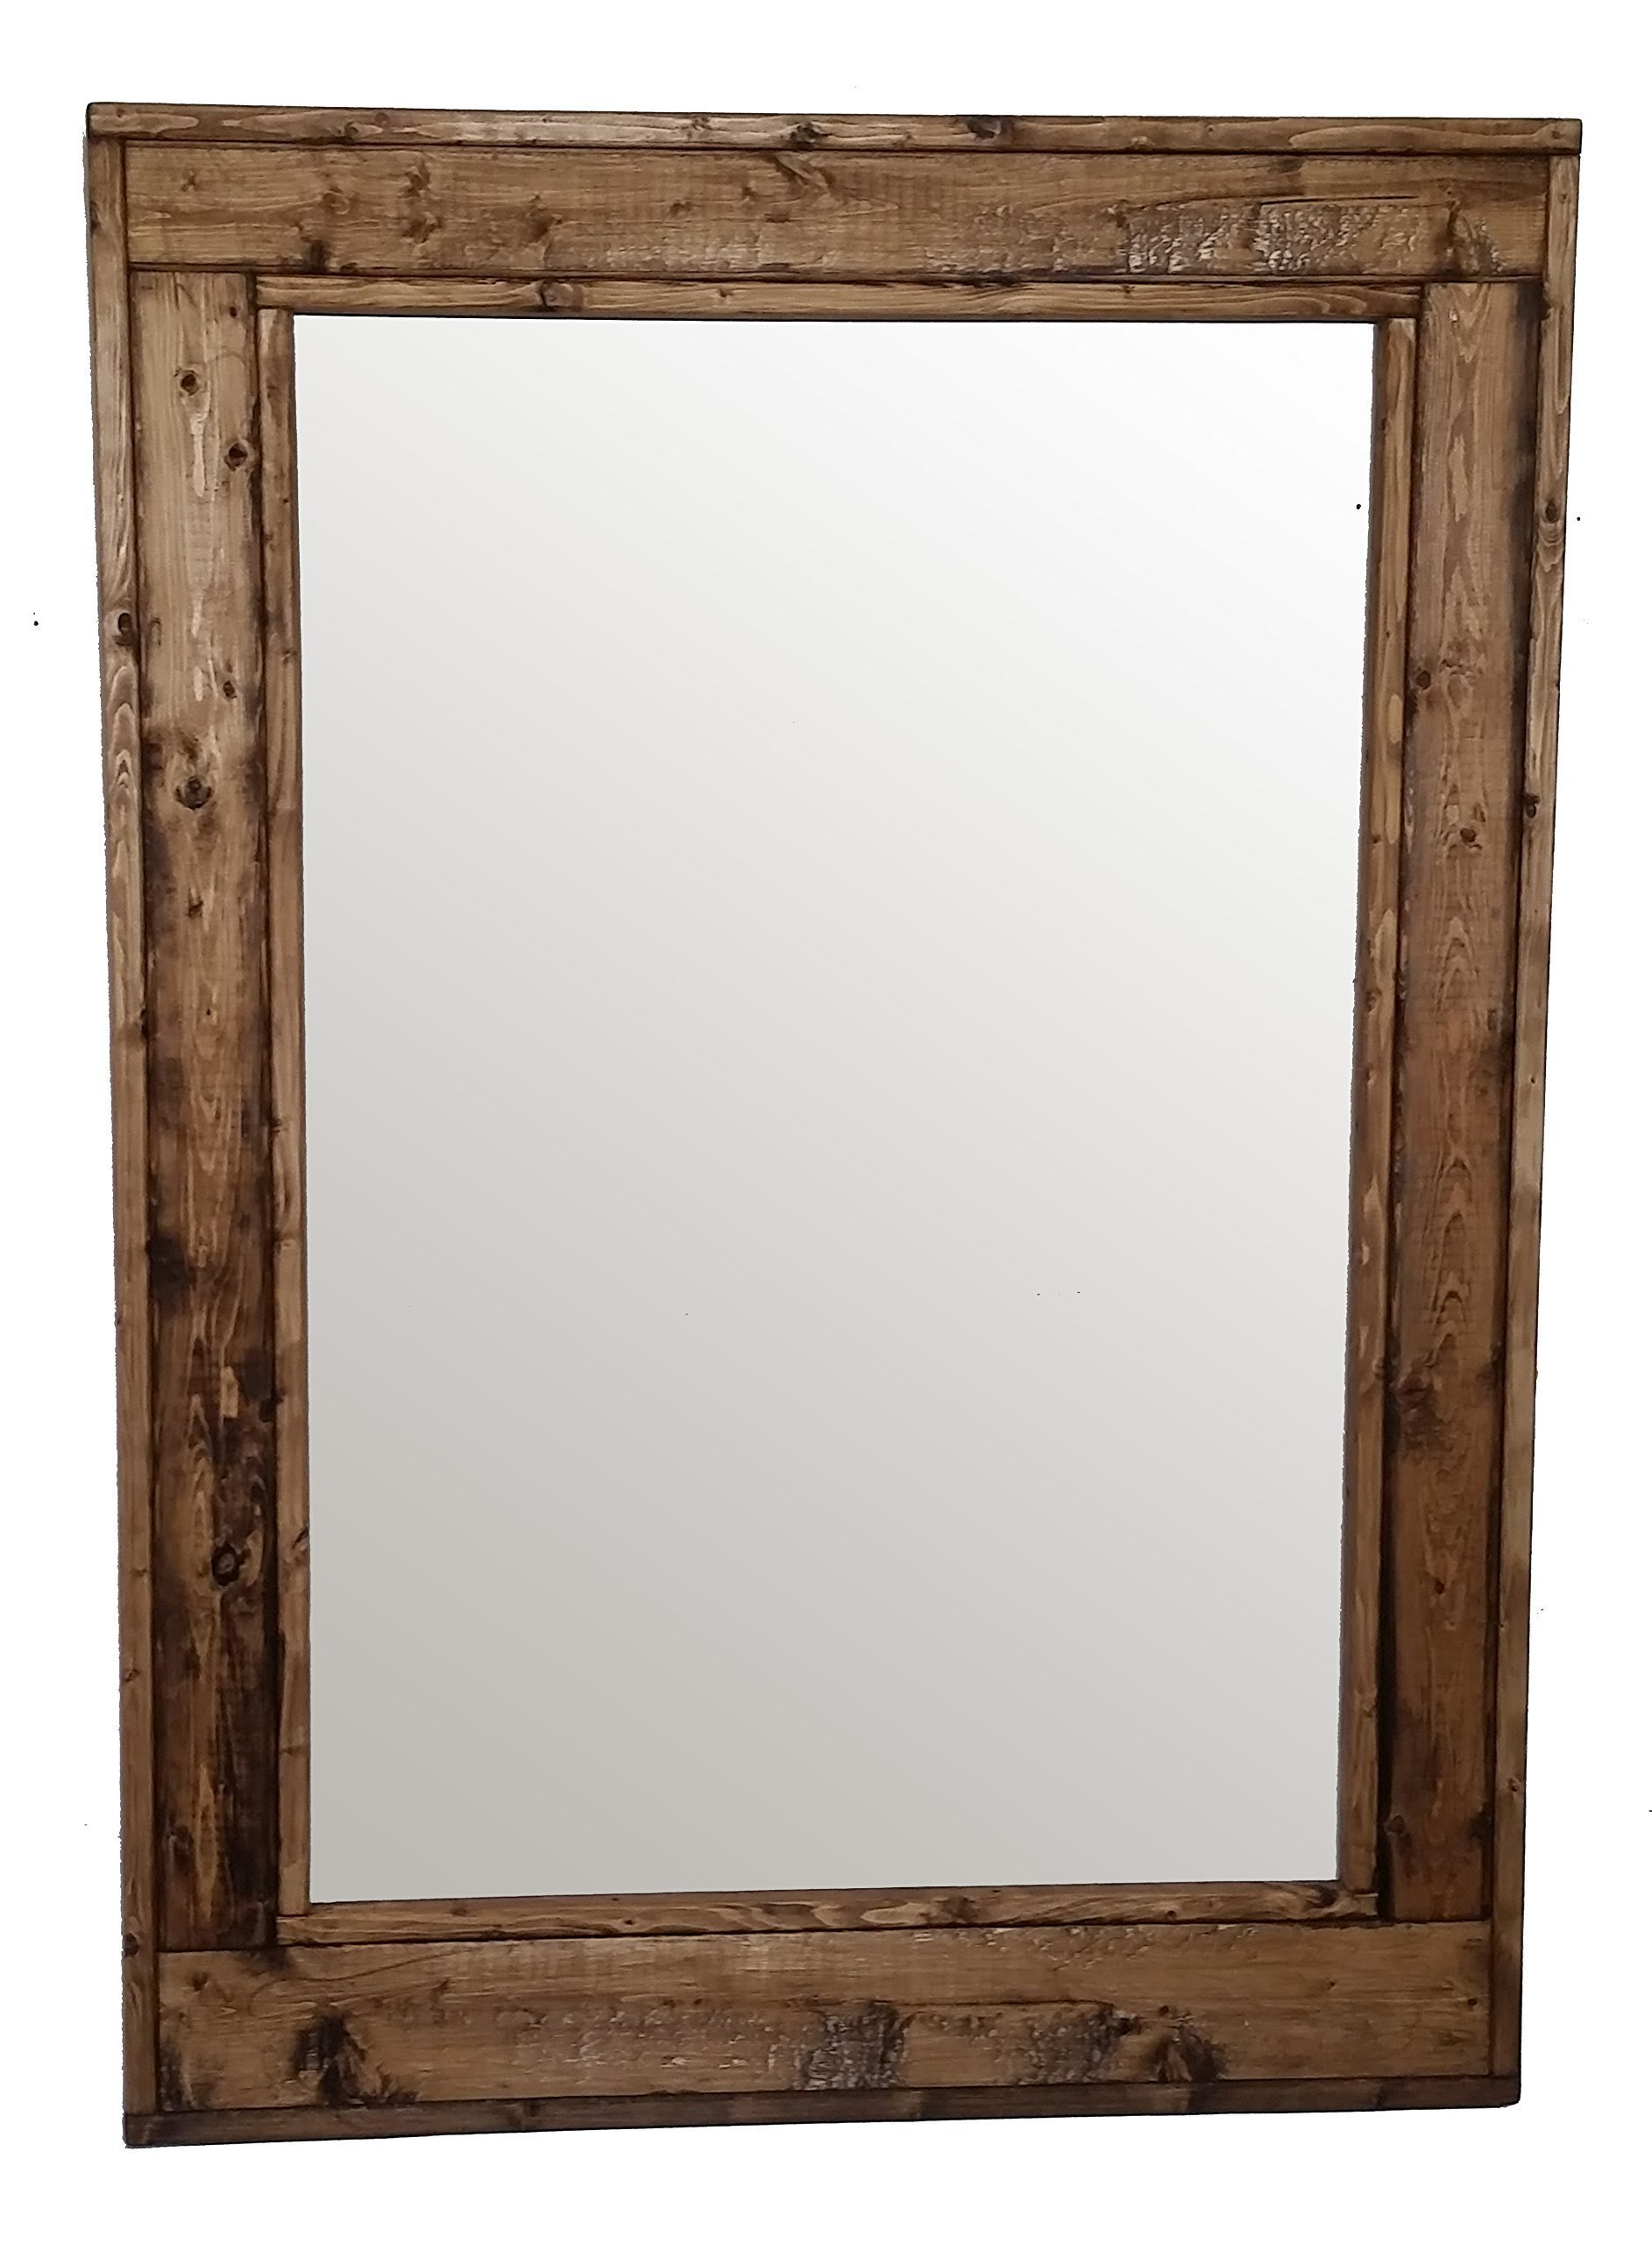 Herringbone 30 x 42 Vertical Framed Mirror Stained in Provincial - Reclaimed Wood Mirror - Large Wall Mirror - Rustic Modern Home - Home Decor - Mirror - Housewares by Renewed Decor